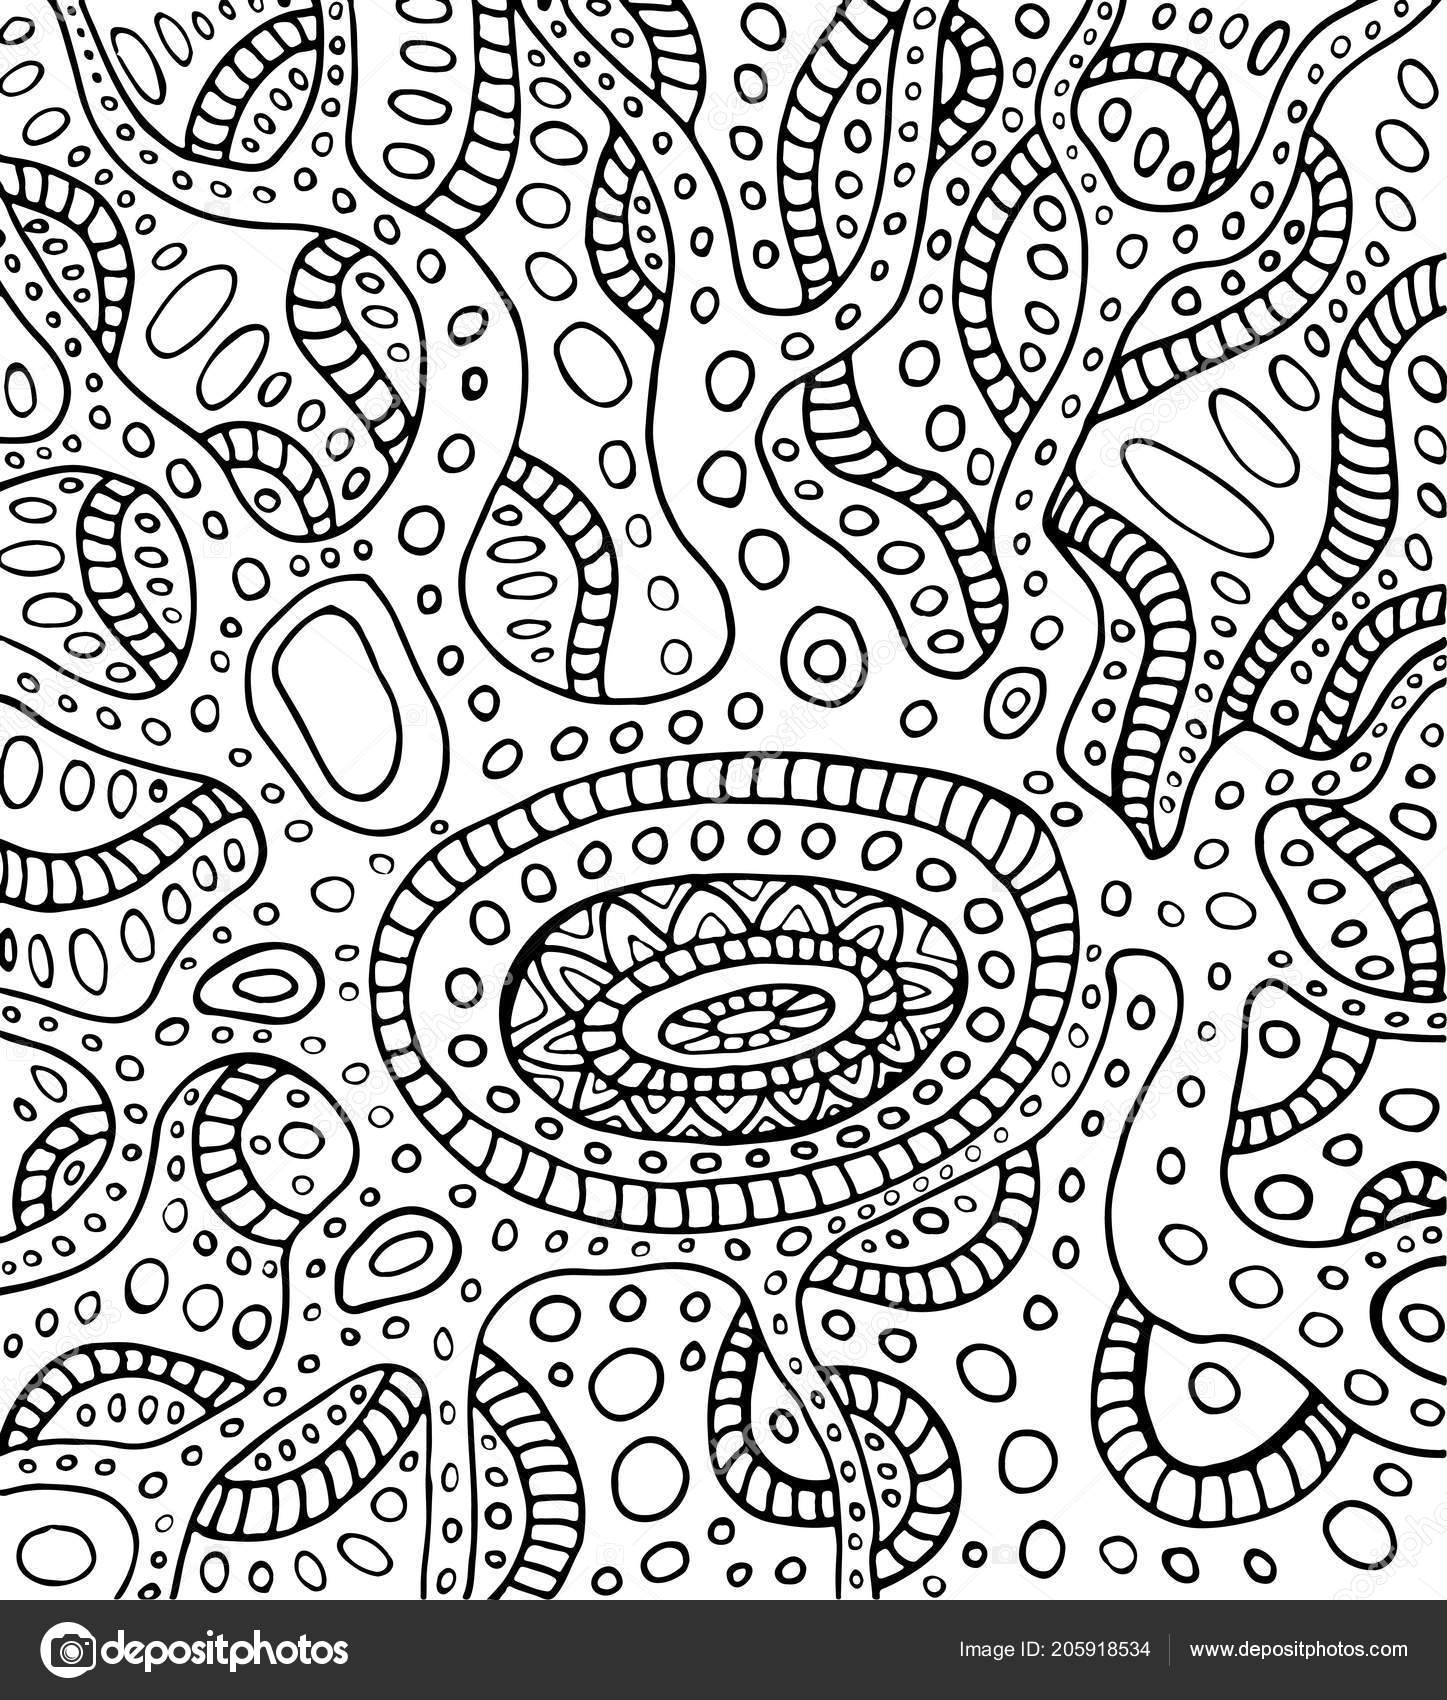 Coloring Page Abstract Pattern Maze Ornaments Psychedelic Stylish Card Vector Stock